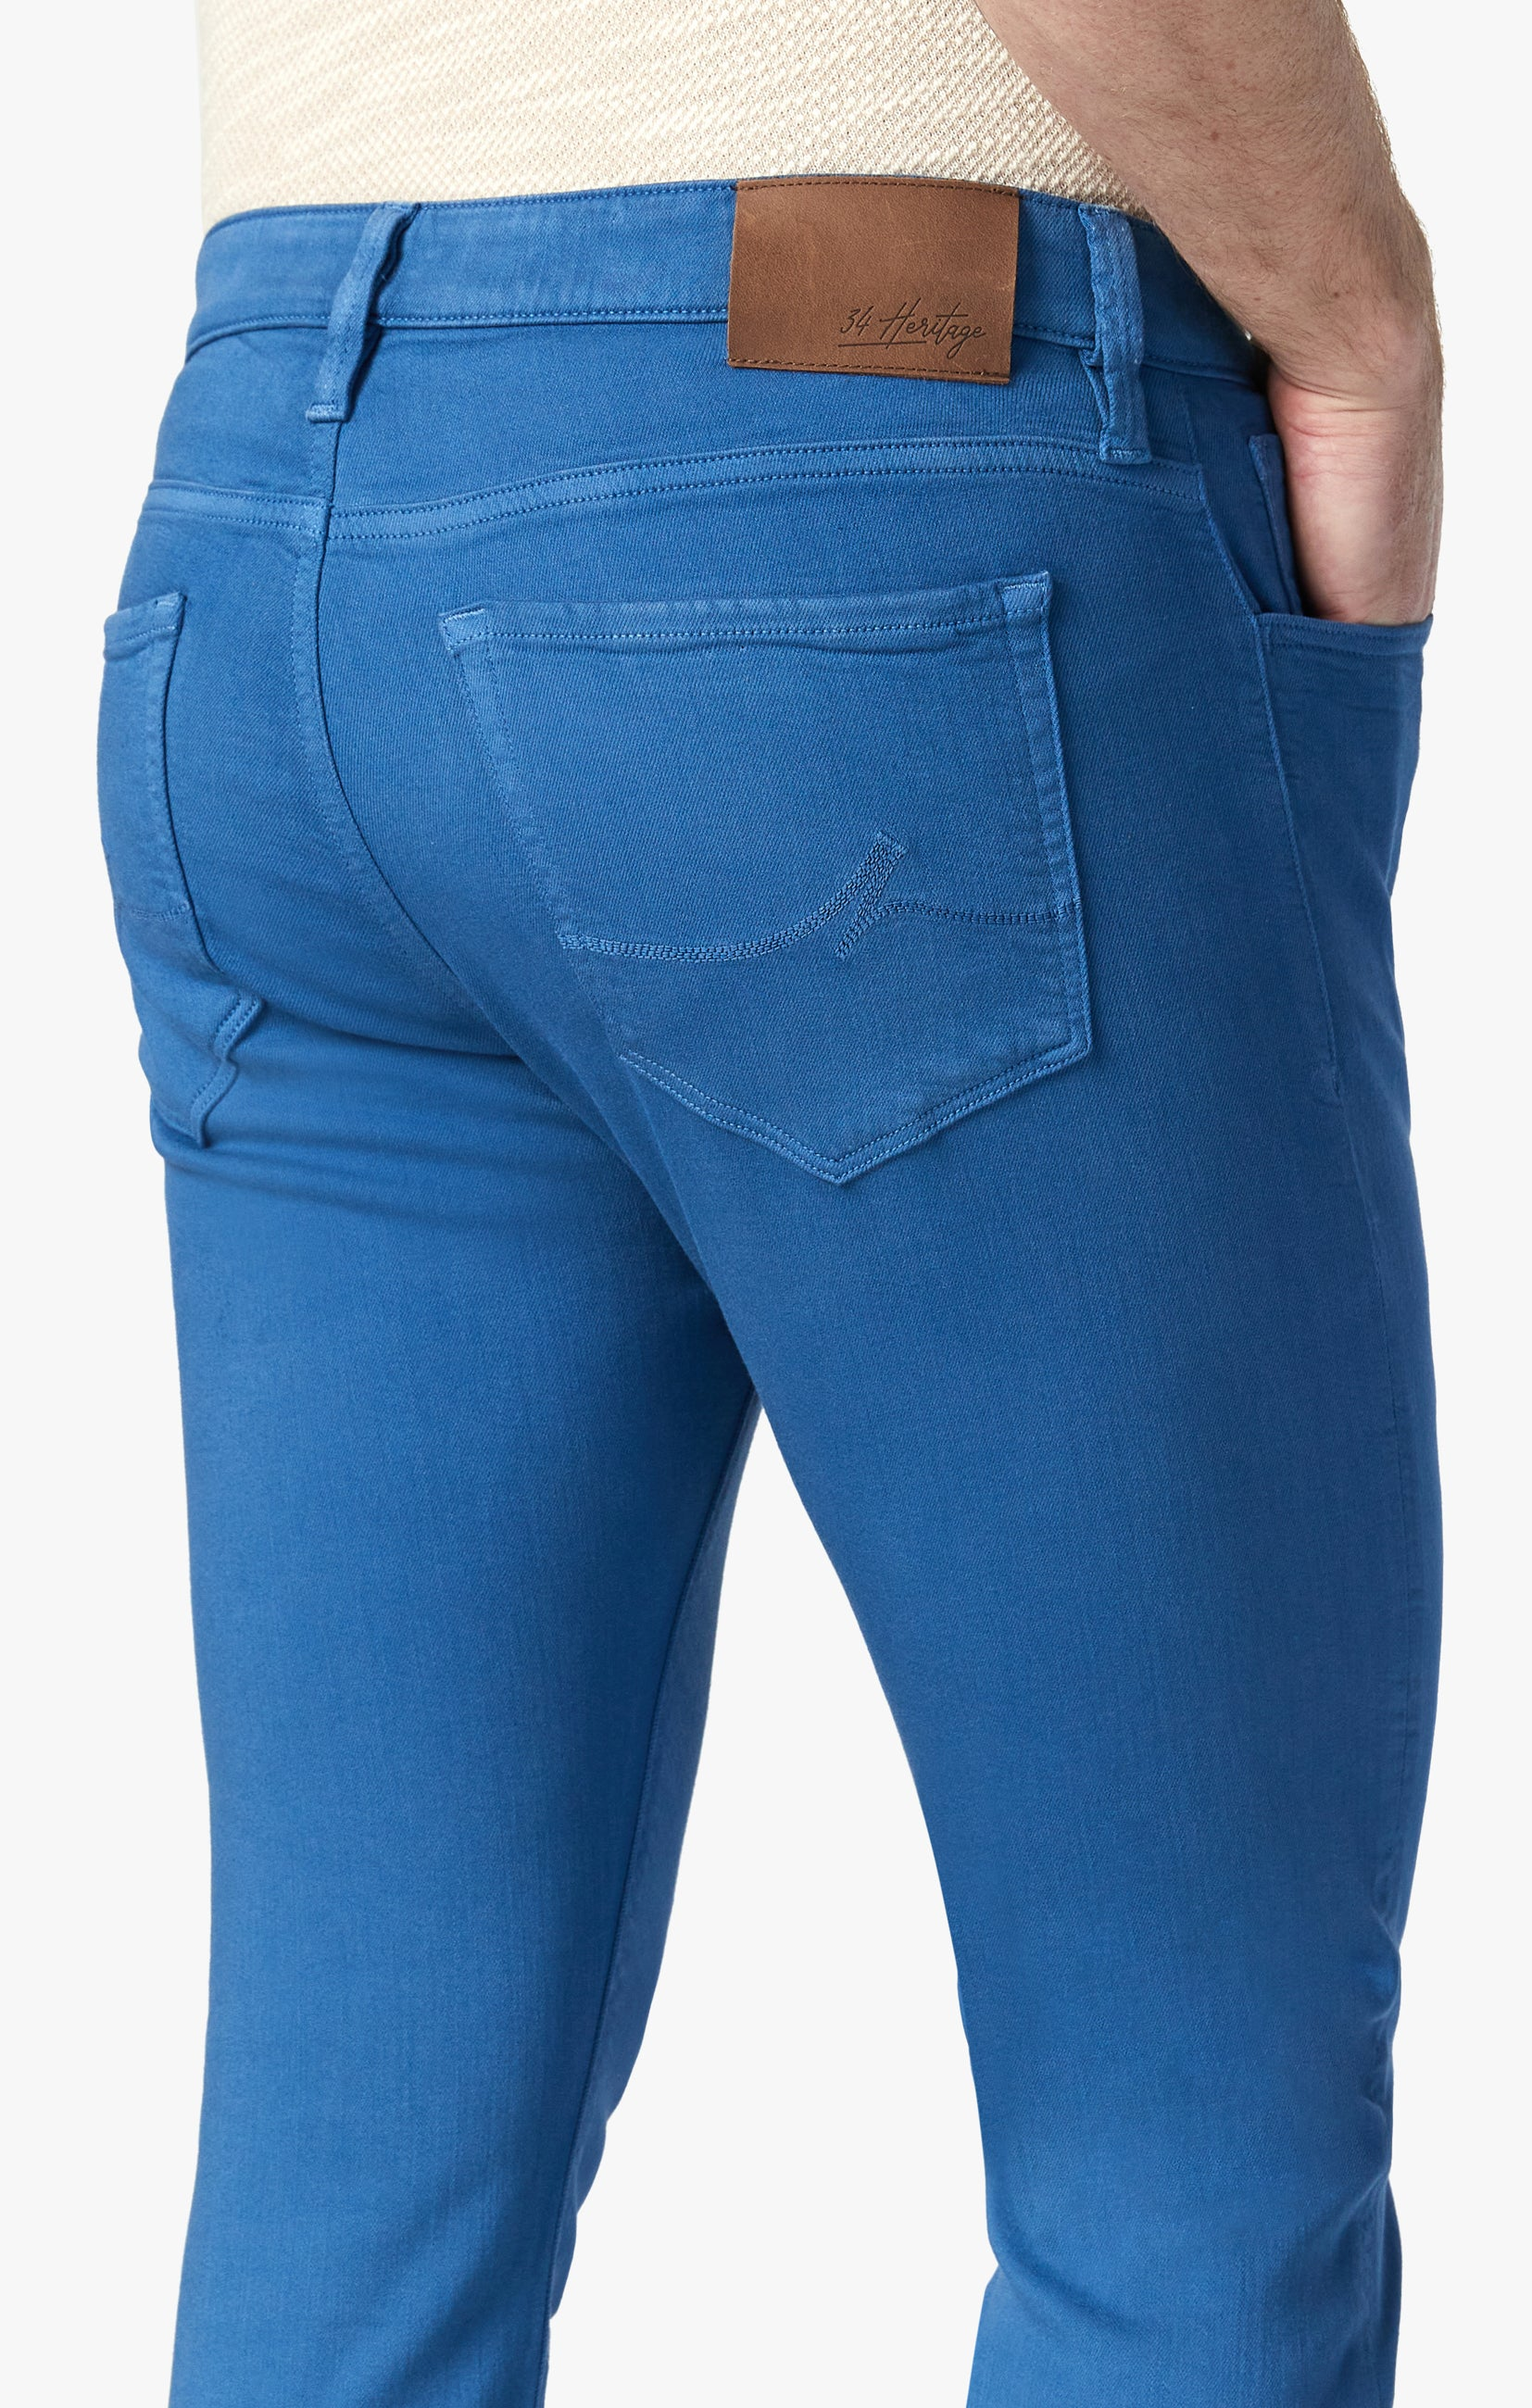 Courage Straight Leg Pants In Royal Comfort Image 4